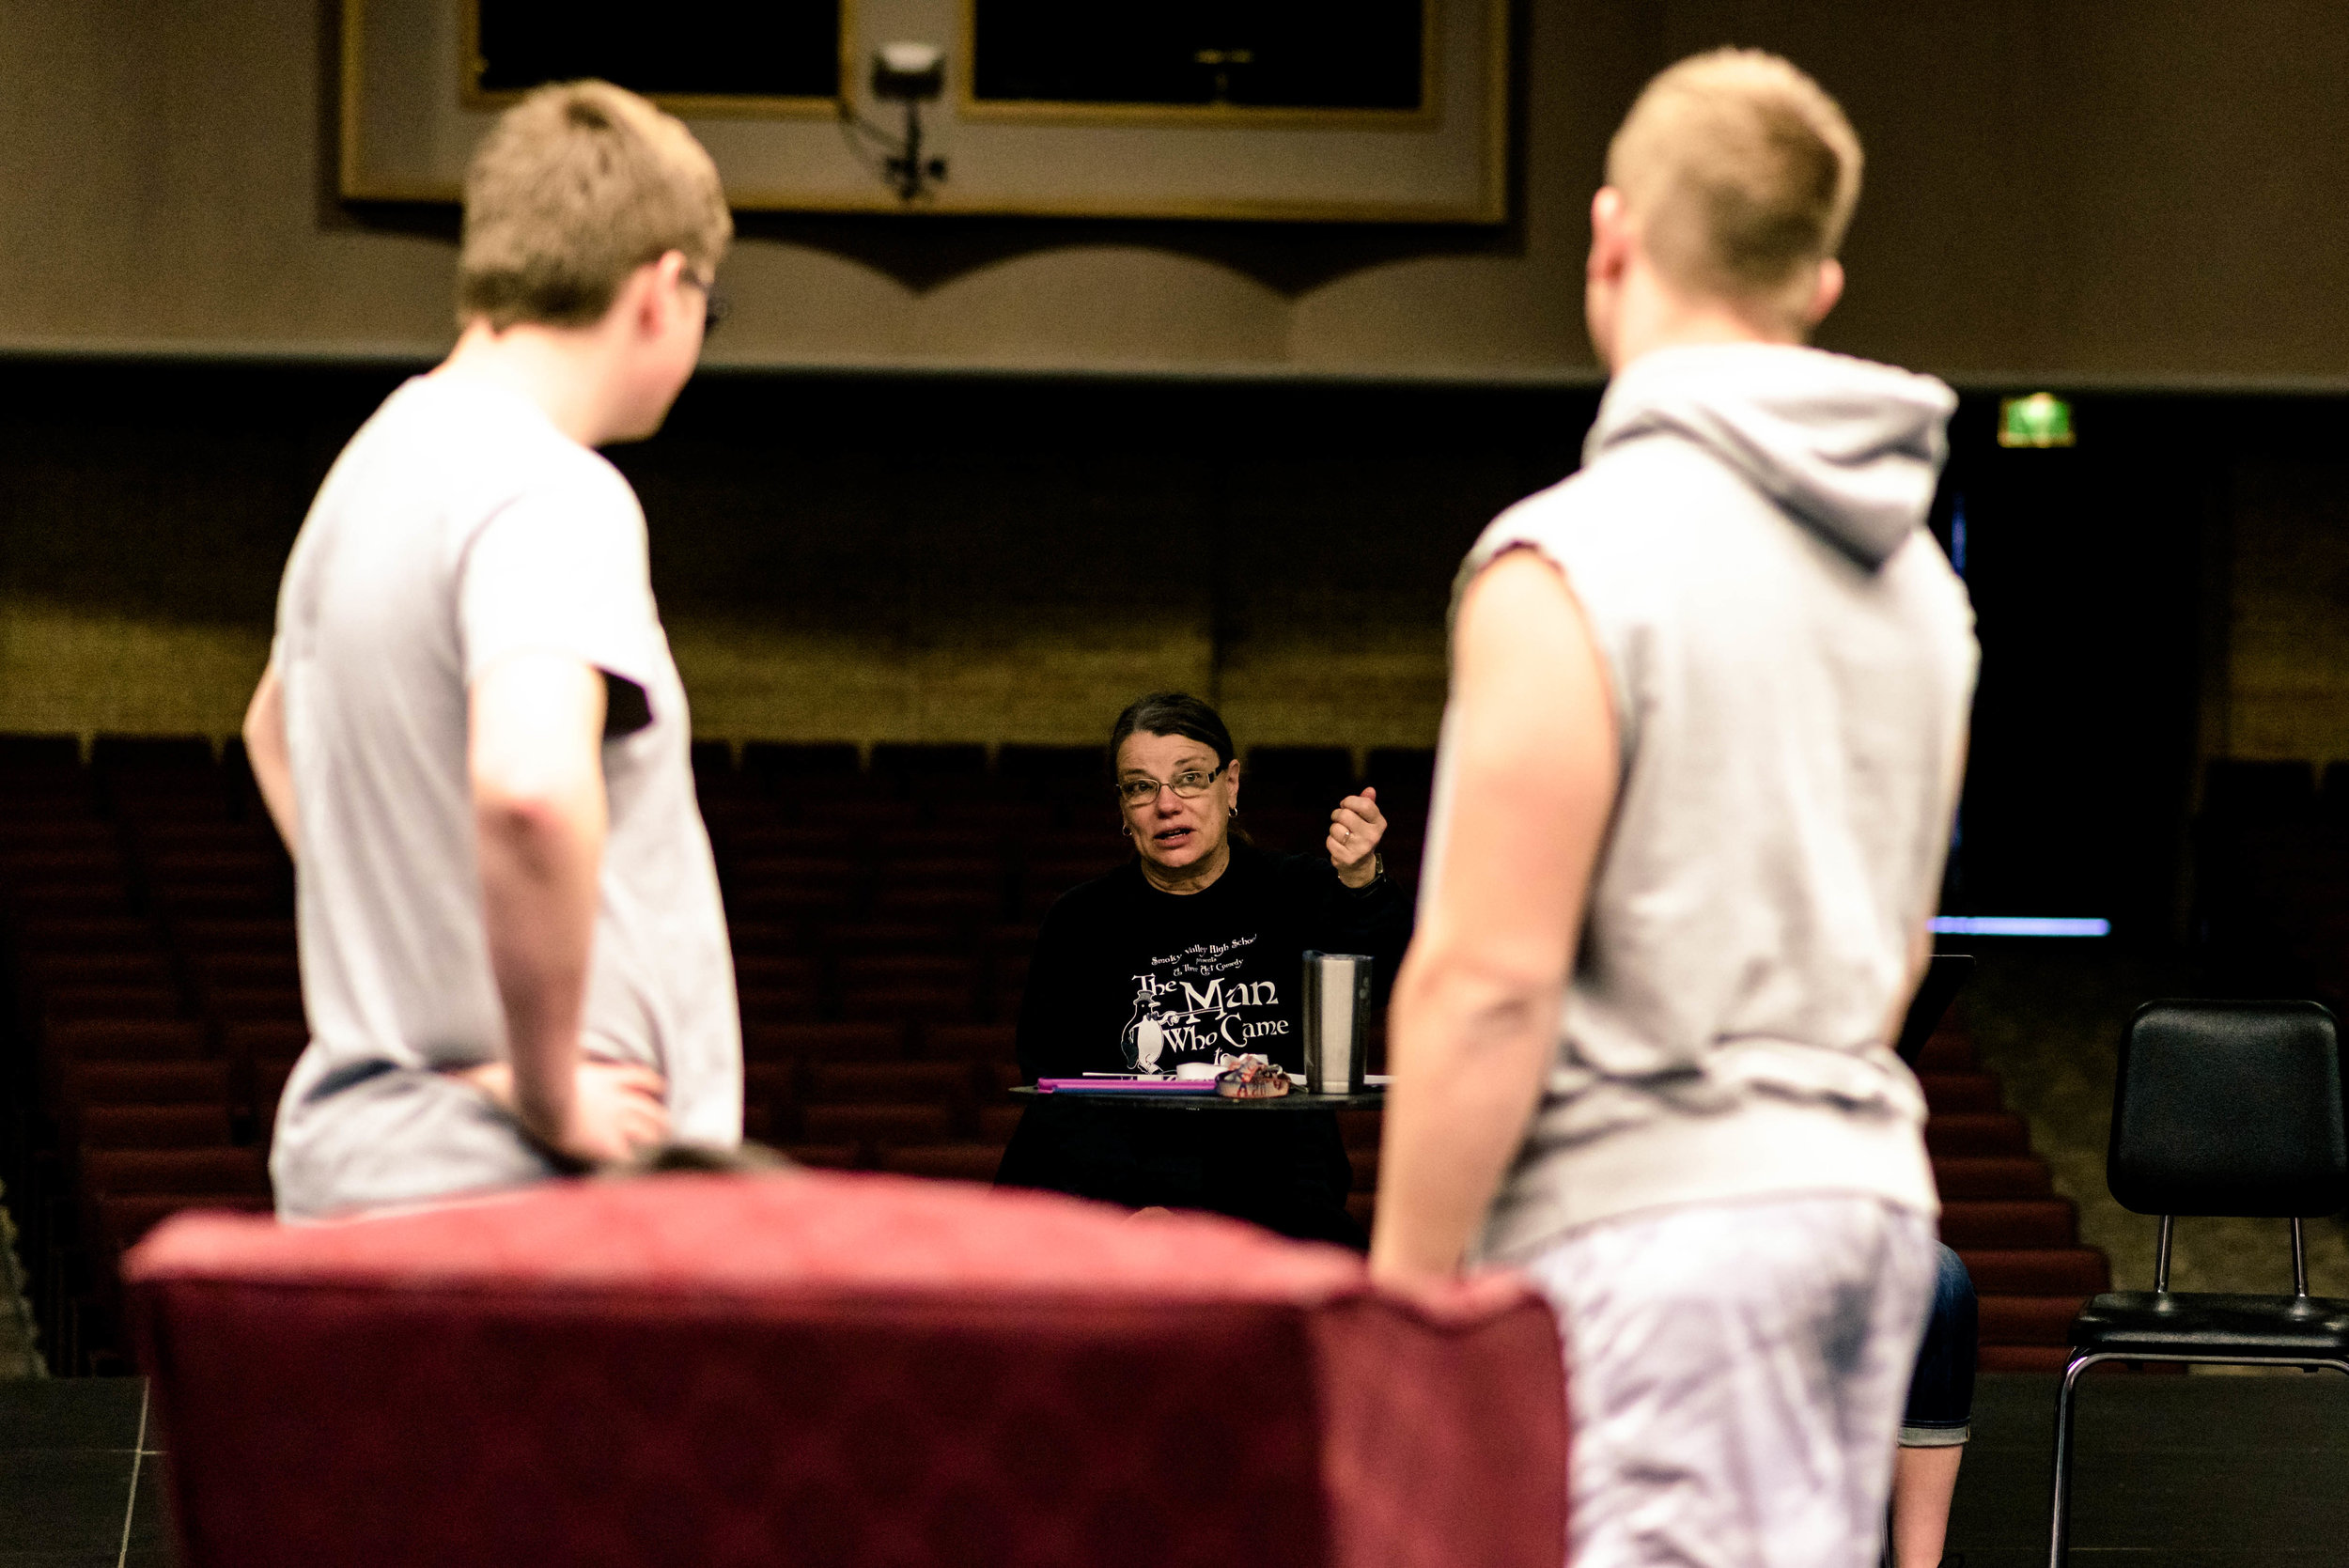 Director Lisa Christopher offers some pointers to Jacob Reed and Ethan Wampler as they fine-tune their scene.